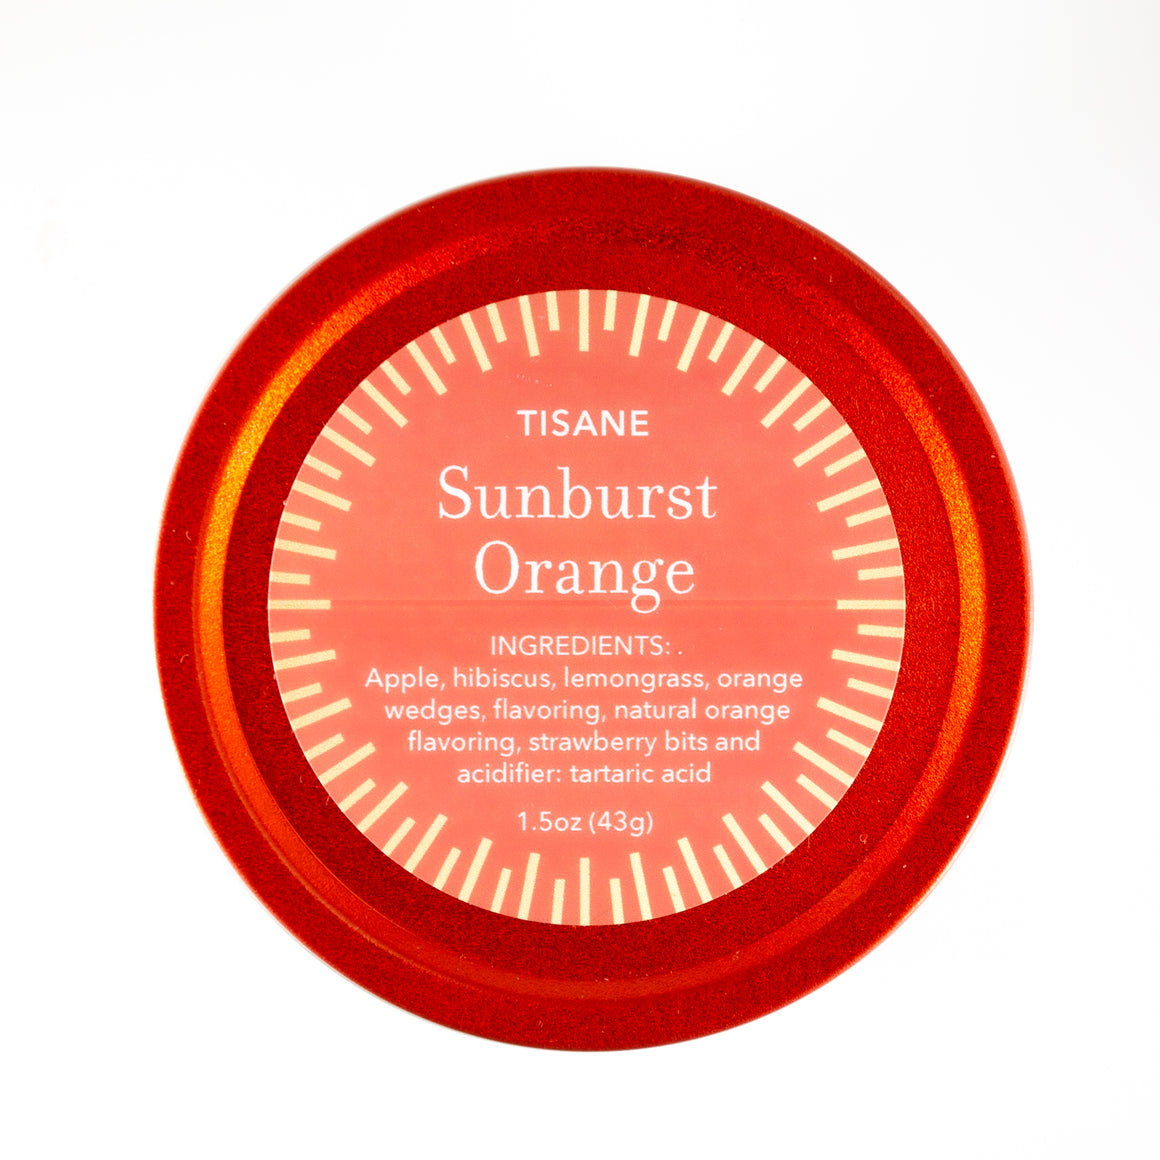 Sunburst Orange in Ripple Red Tin